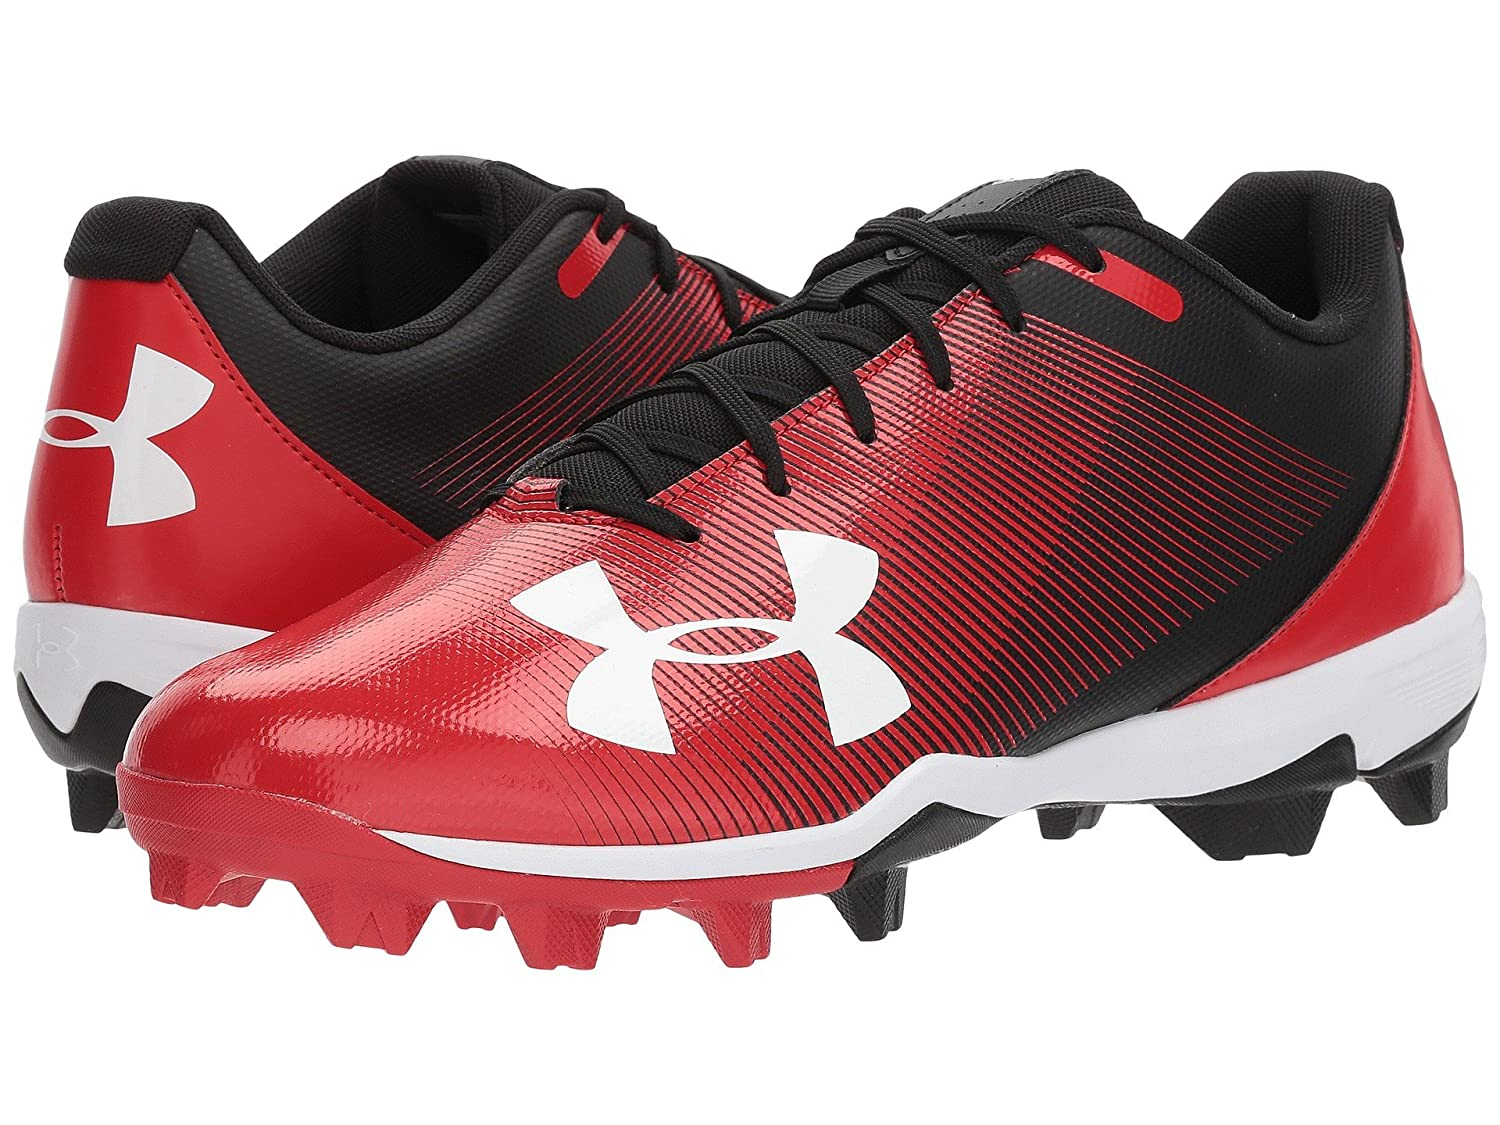 (アンダーアーマー) UNDER ARMOUR メンズ野球ベースボールシューズ靴 UA Leadoff Low RM Black/Red 11 (29cm) D Medium B07CBMRM16